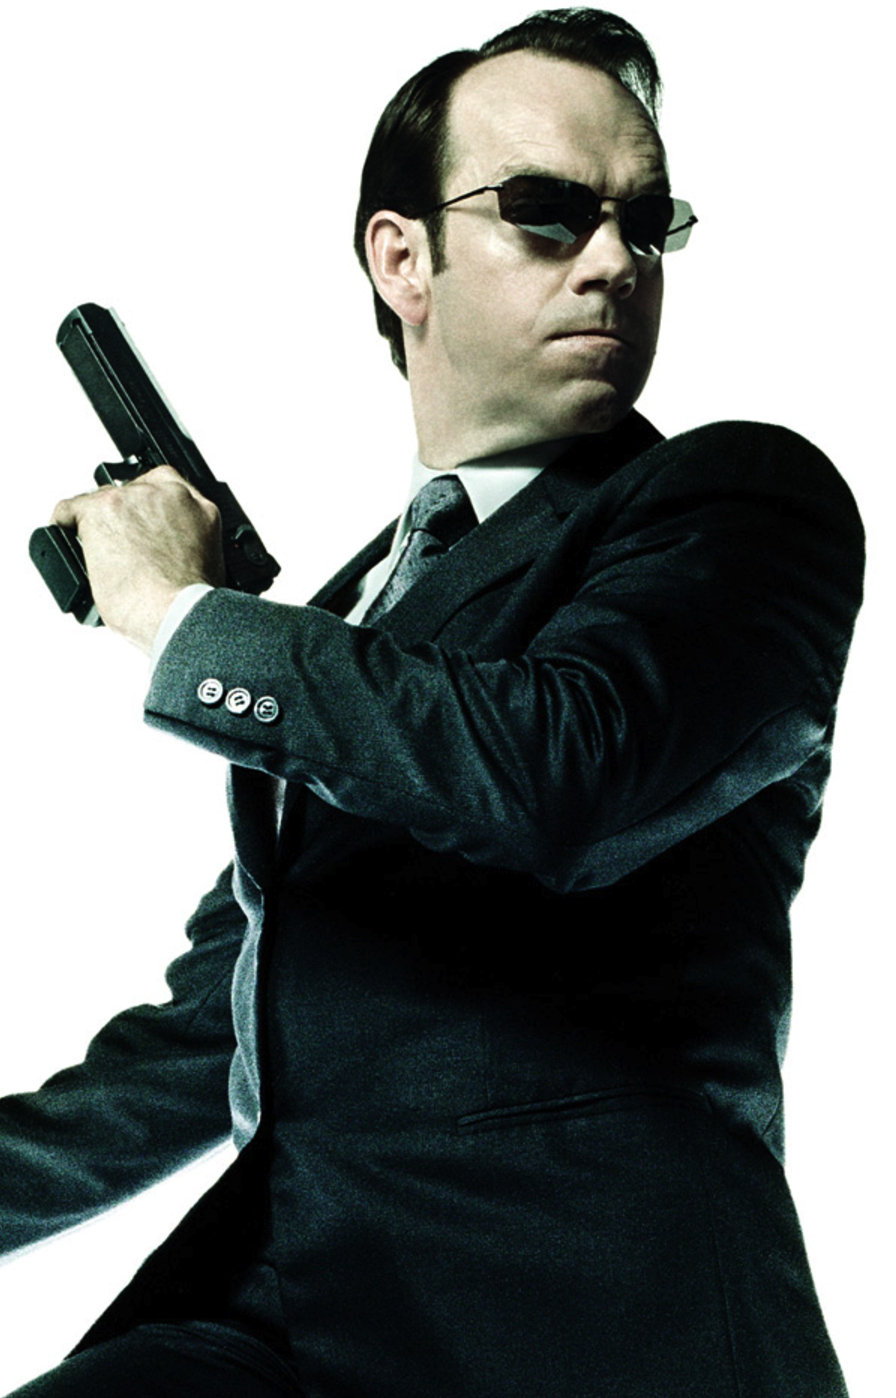 cc0a33797536 Agent Smith | Matrix Wiki | FANDOM powered by Wikia